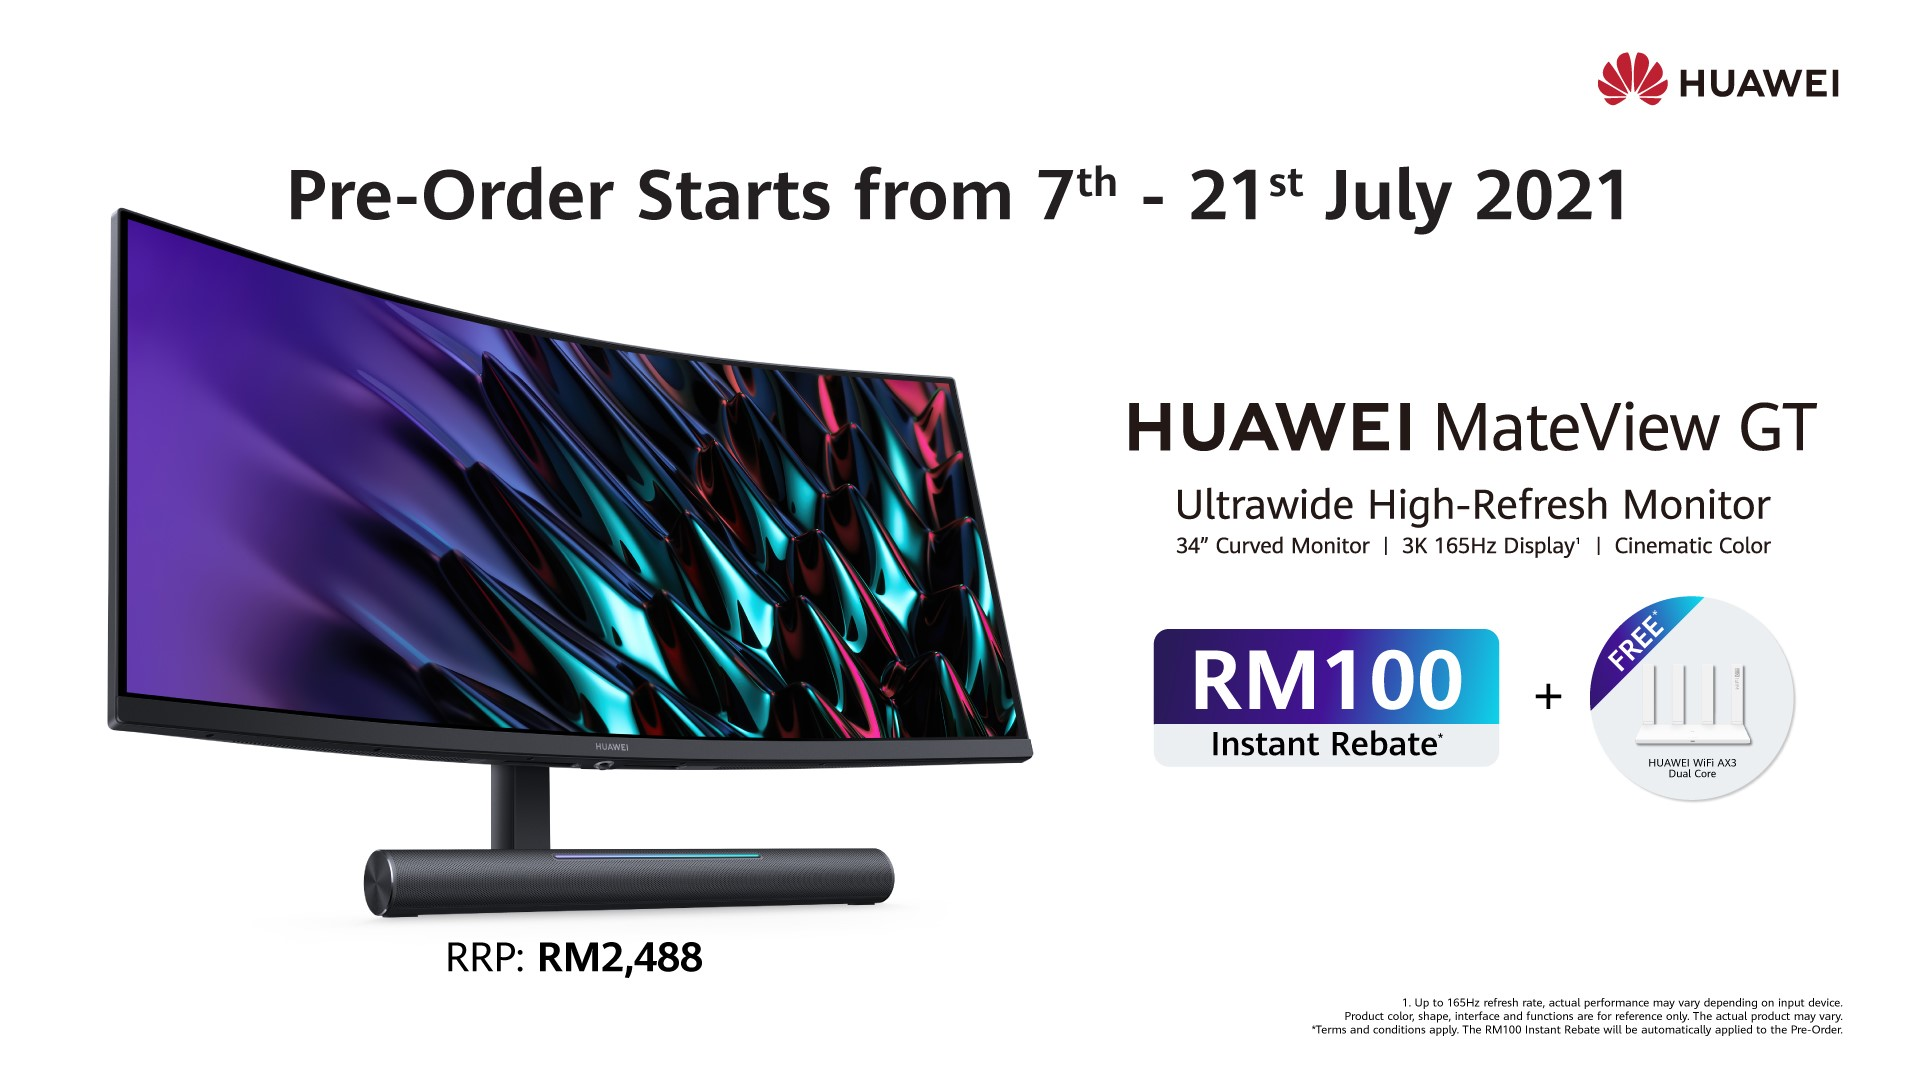 Pre-Order The HUAWEI MateView and MateView GT Now for an instant rebate of RM 100 and freebie worth RM 199 22